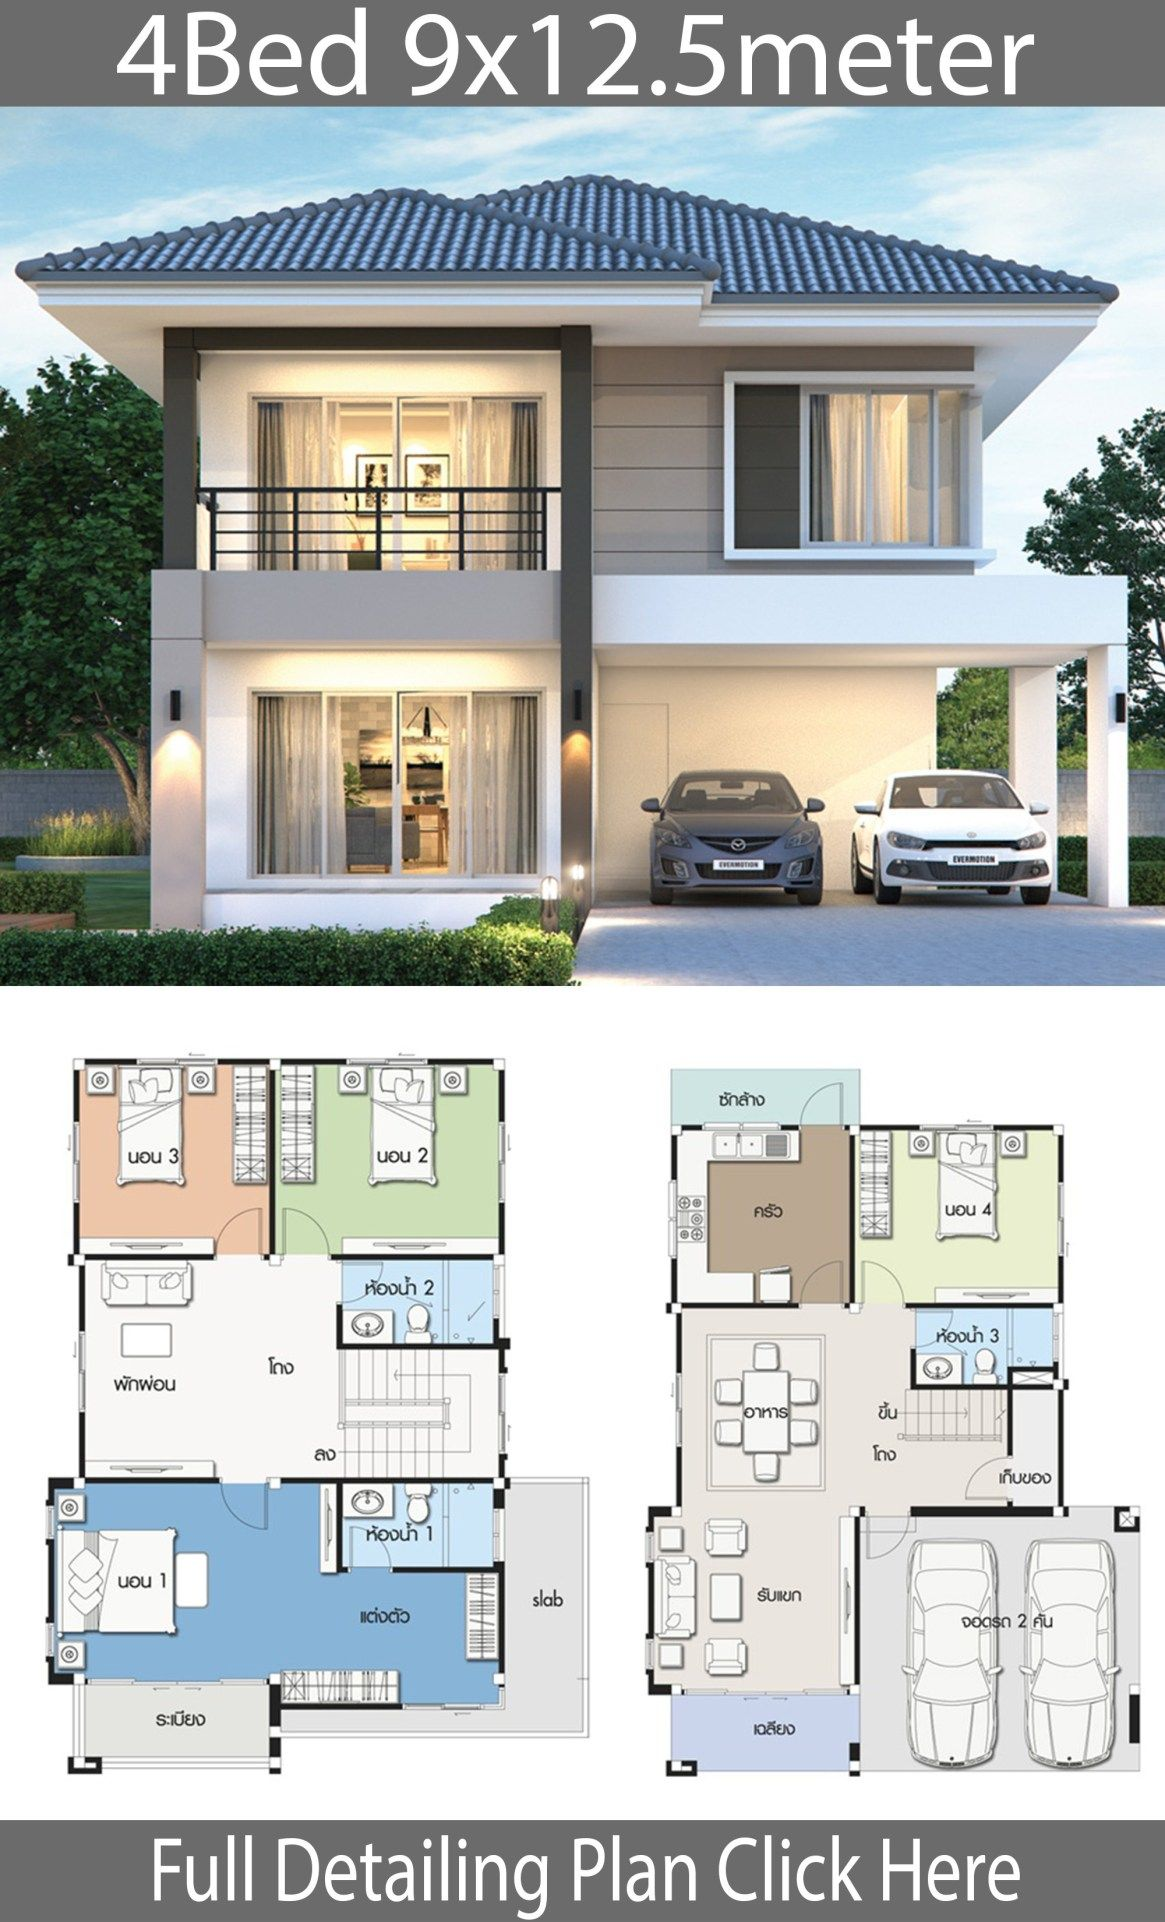 House Design Plan 9x12 5m With 4 Bedrooms Home Design With Plansearch Bungalow House Design Duplex House Design 2 Storey House Design